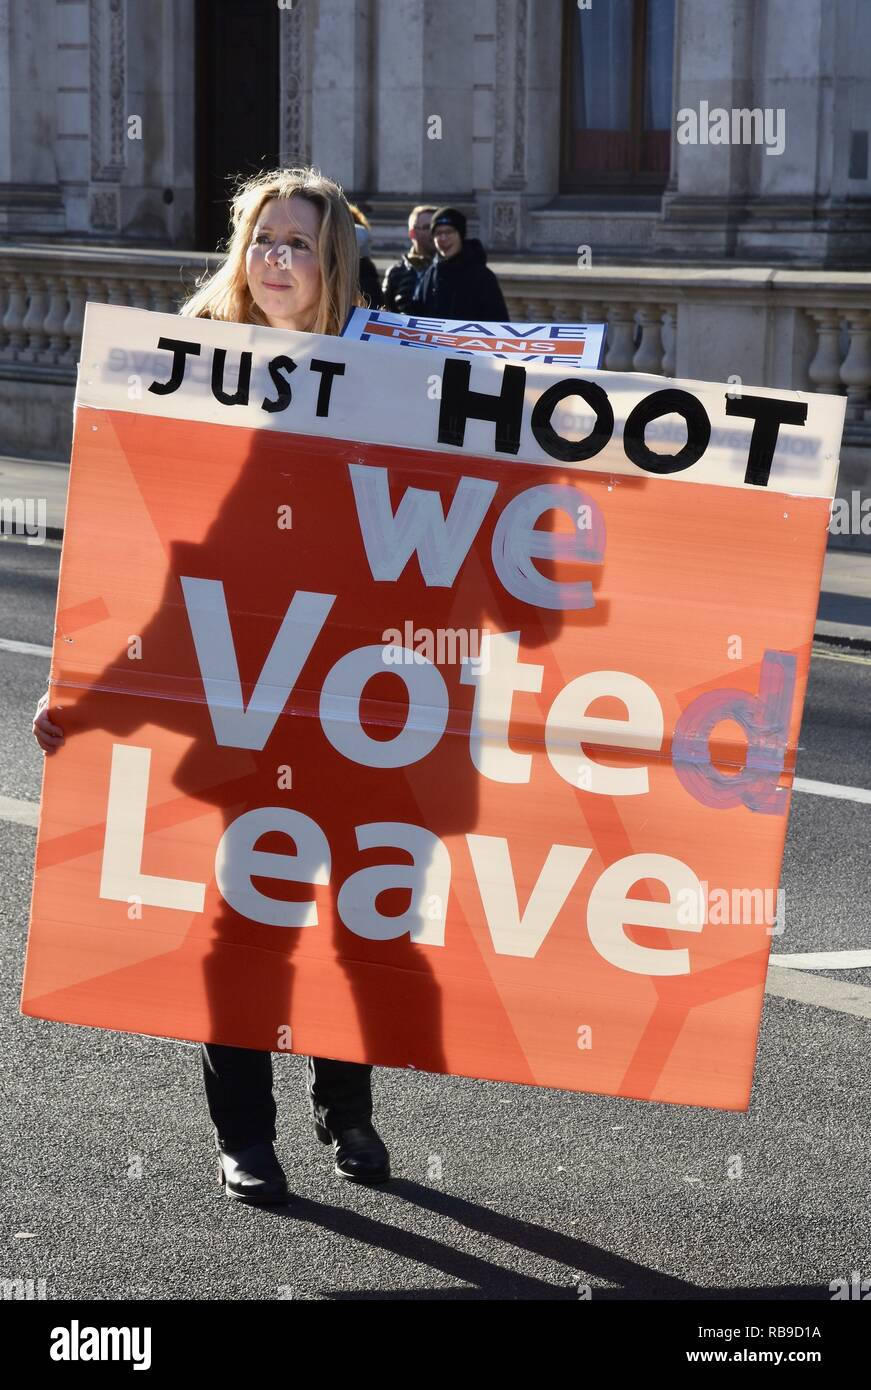 London, UK. 8th Jan 2019. A Brexiteer holding a 'We voted leave' placard appeals to motorists to hoot their support. Outside 10 Downing Street, Whitehall,London.UK Credit: michael melia/Alamy Live News - Stock Image